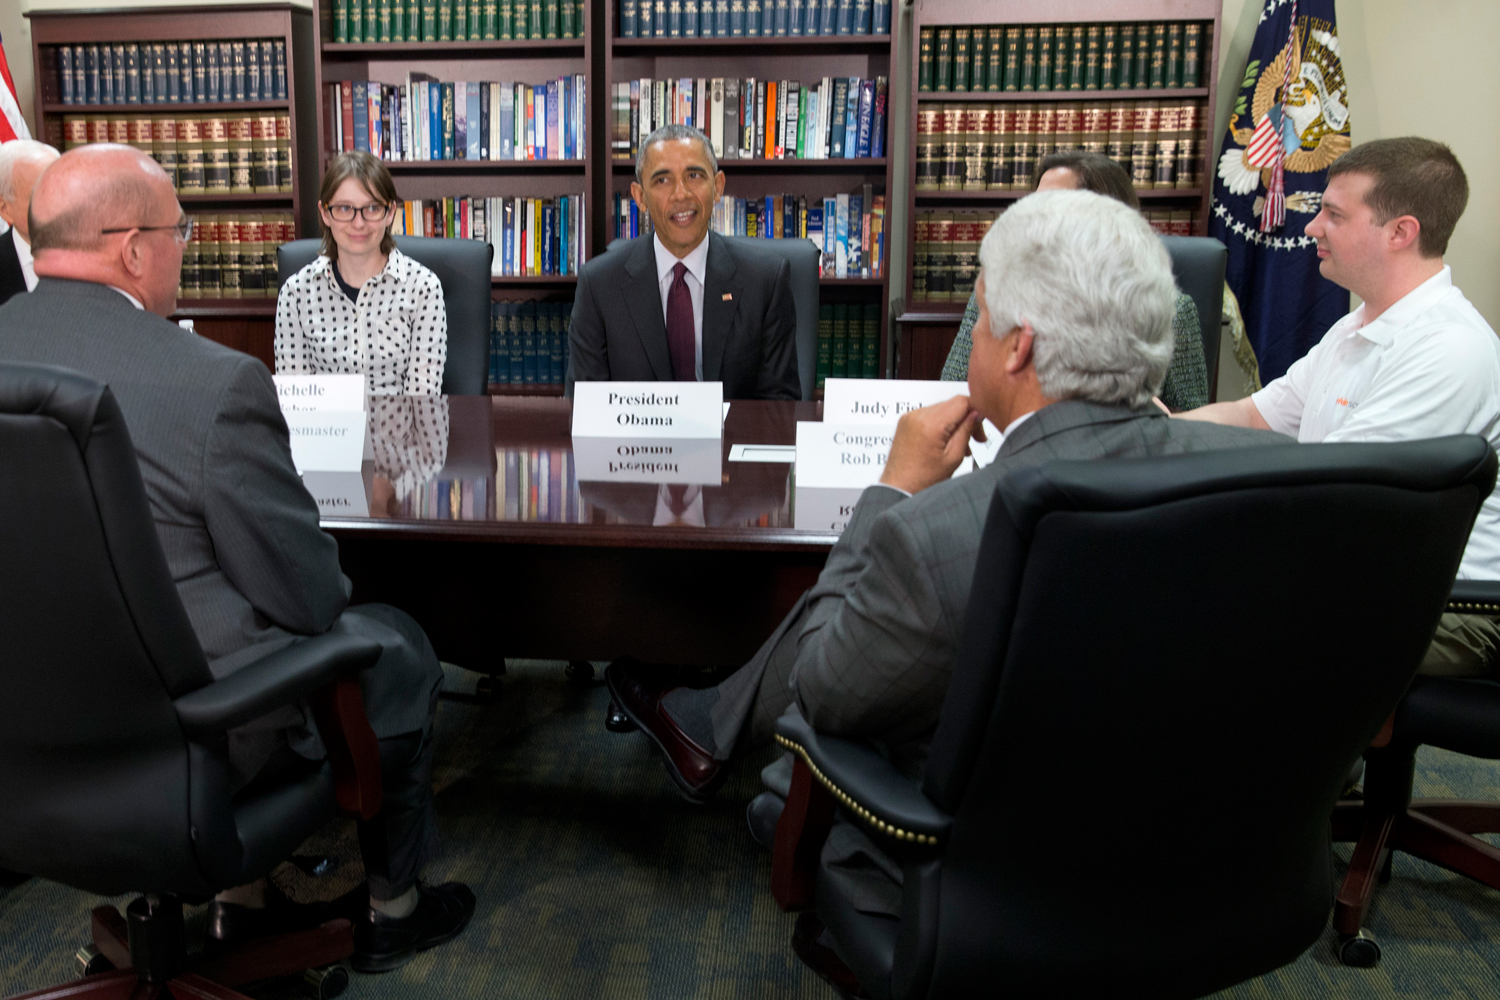 In this April 3, 2015, file photo, President Barack Obama, center, participates in a roundtable about clean energy with Judy Fisher, clockwise from Obama, Marvin Lance Futch, Rep. Rob Bishop, R-Utah, Harry  Buddy  Briesmaster III, Sen. Orrin Hatch, R-Utah, and Michelle Fisher at Hill Air Force Base, Utah.